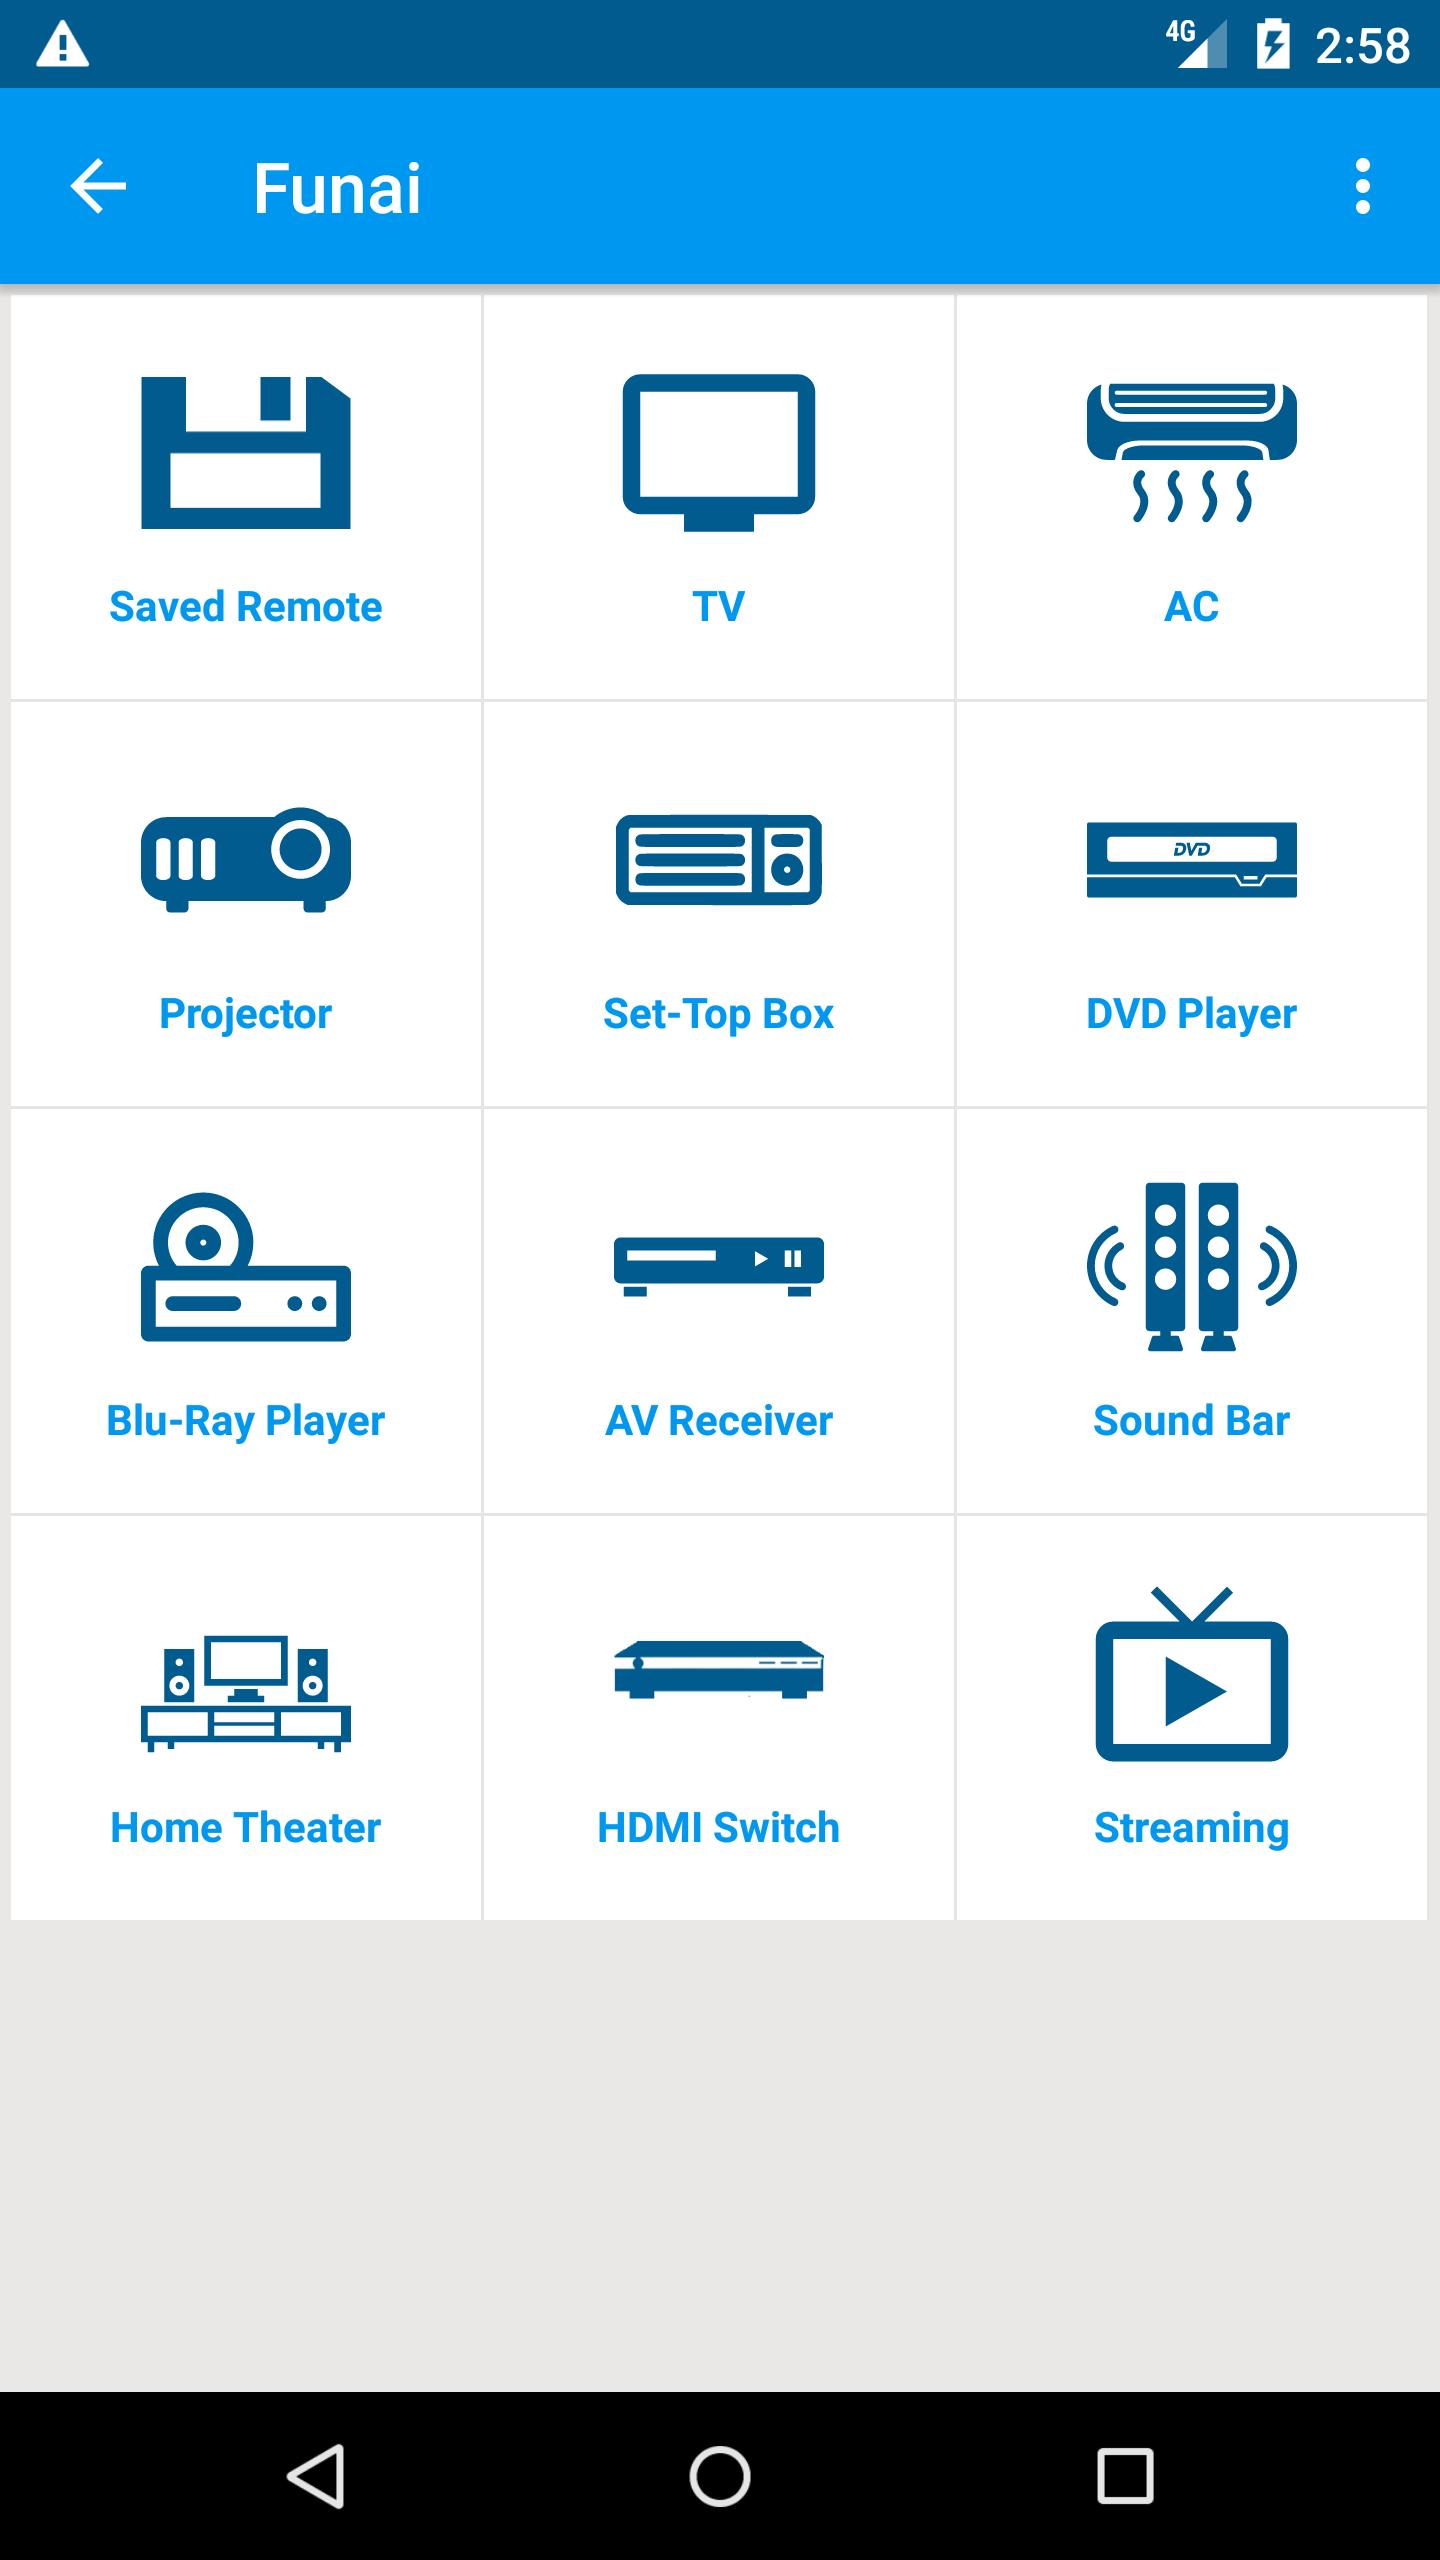 Funai TV Remote for Android - APK Download